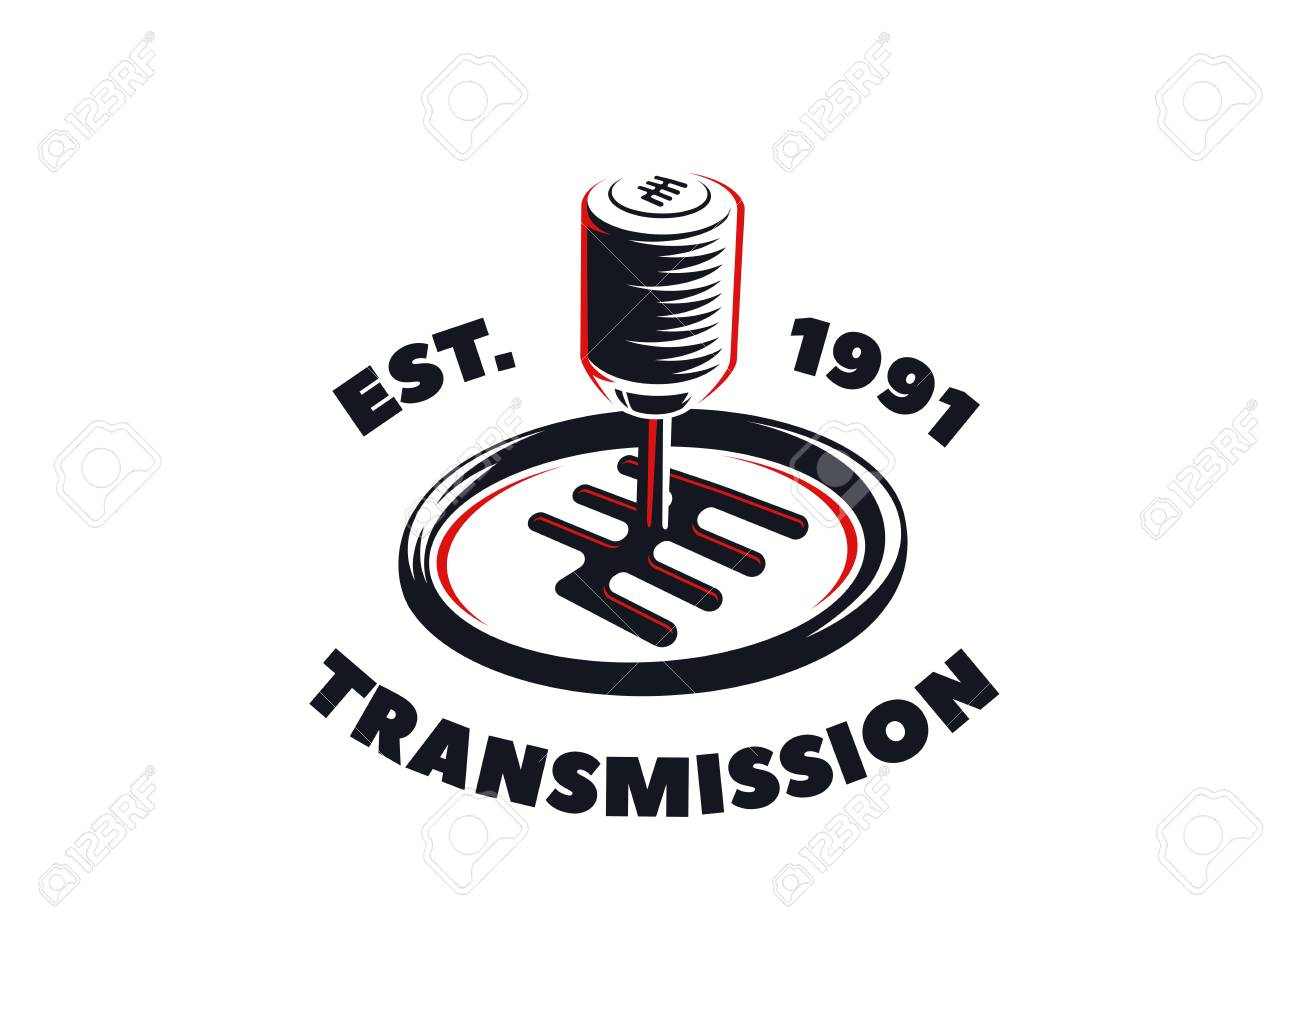 Car transmission service logo on white background  Automatic